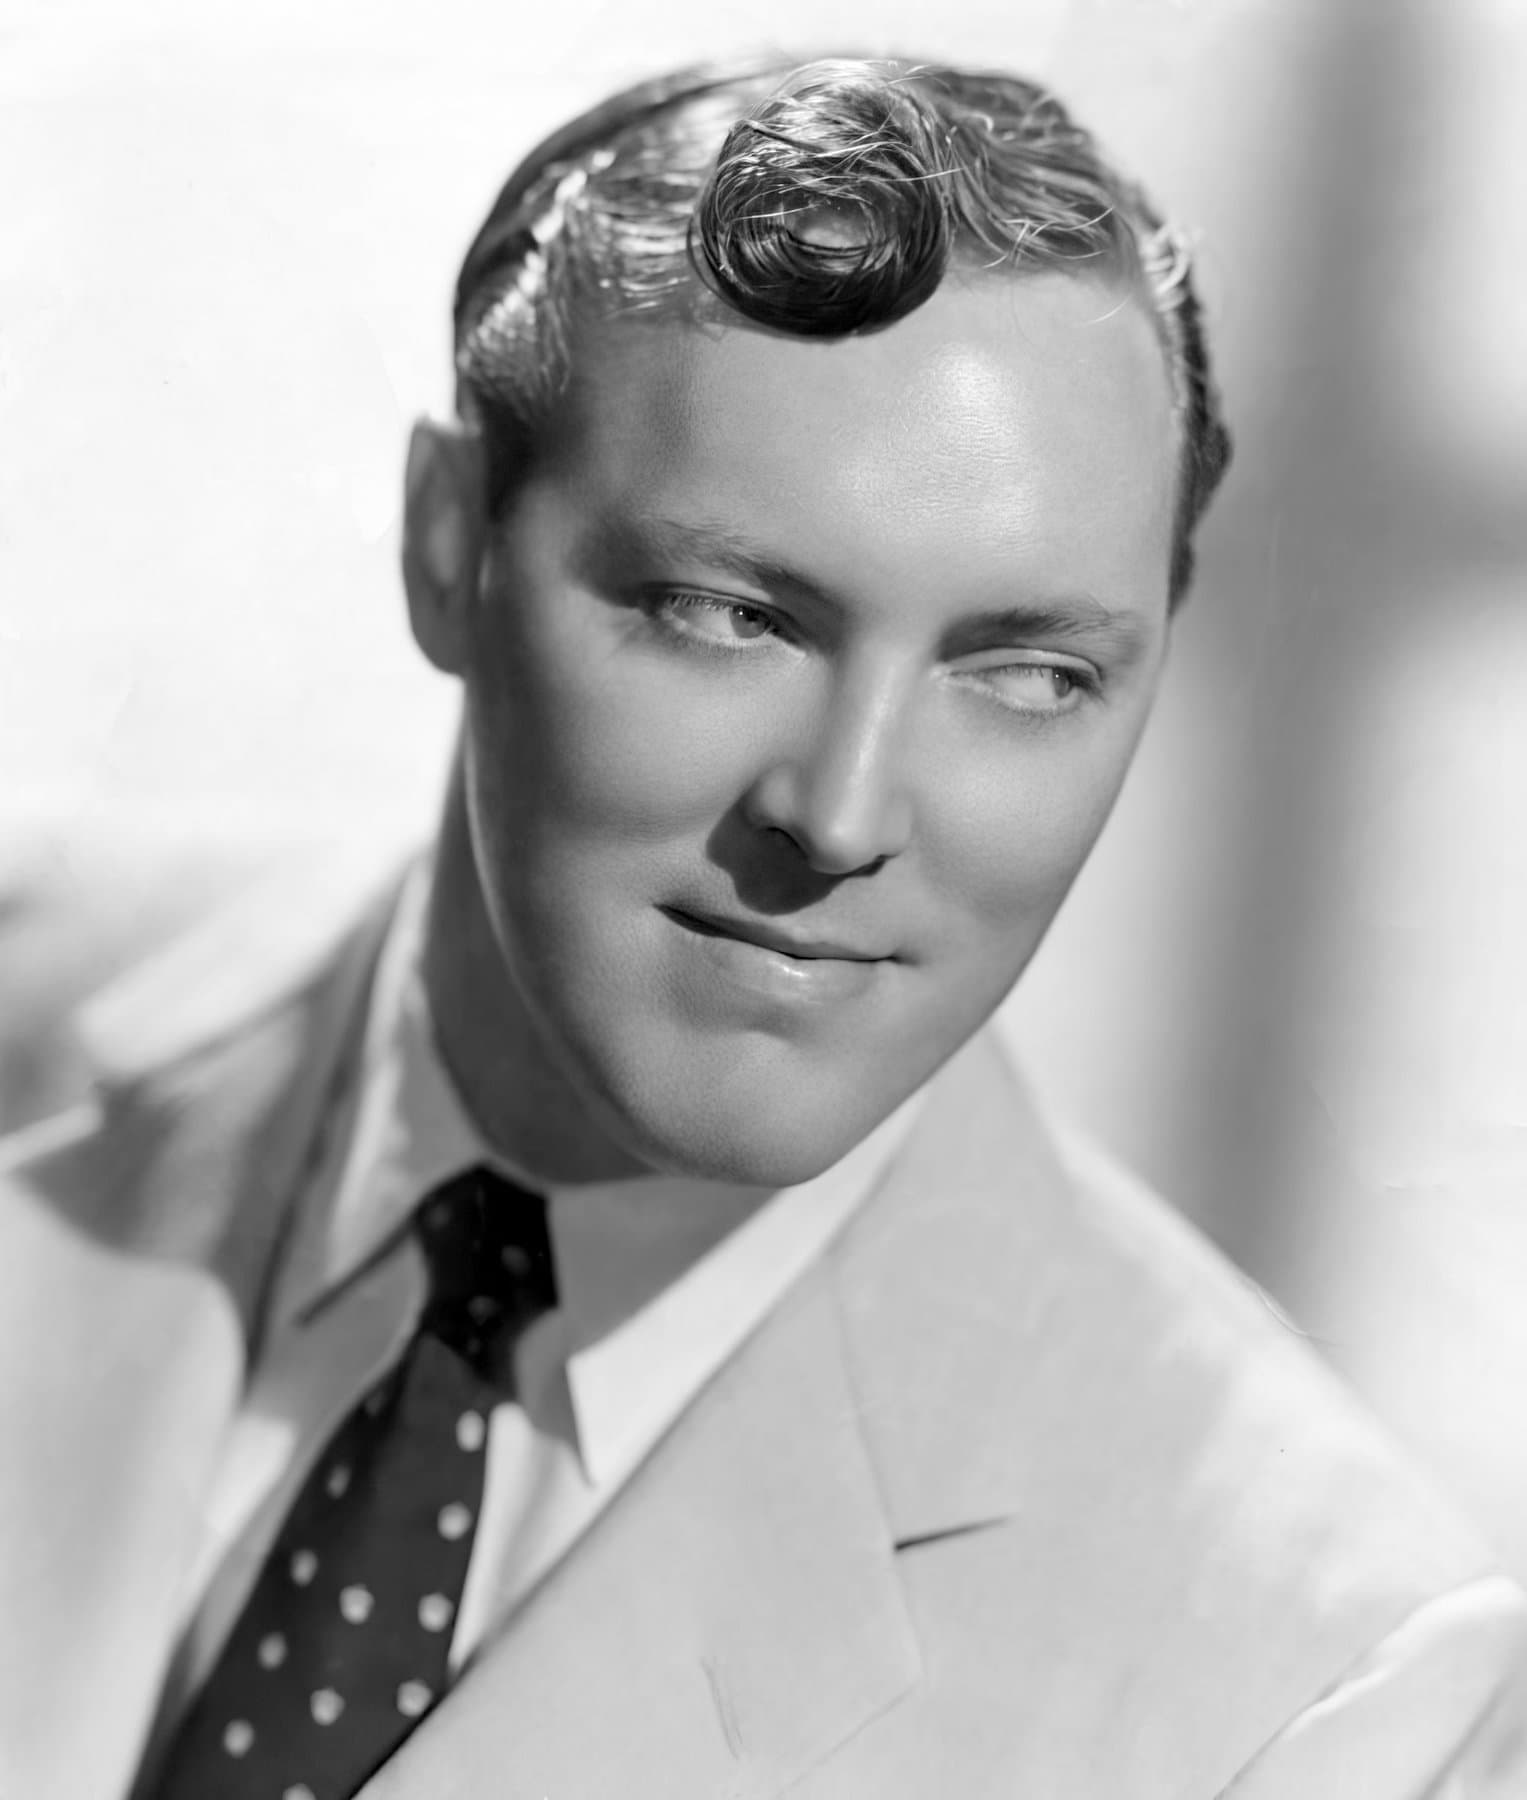 Vintage portrait of Bill Haley